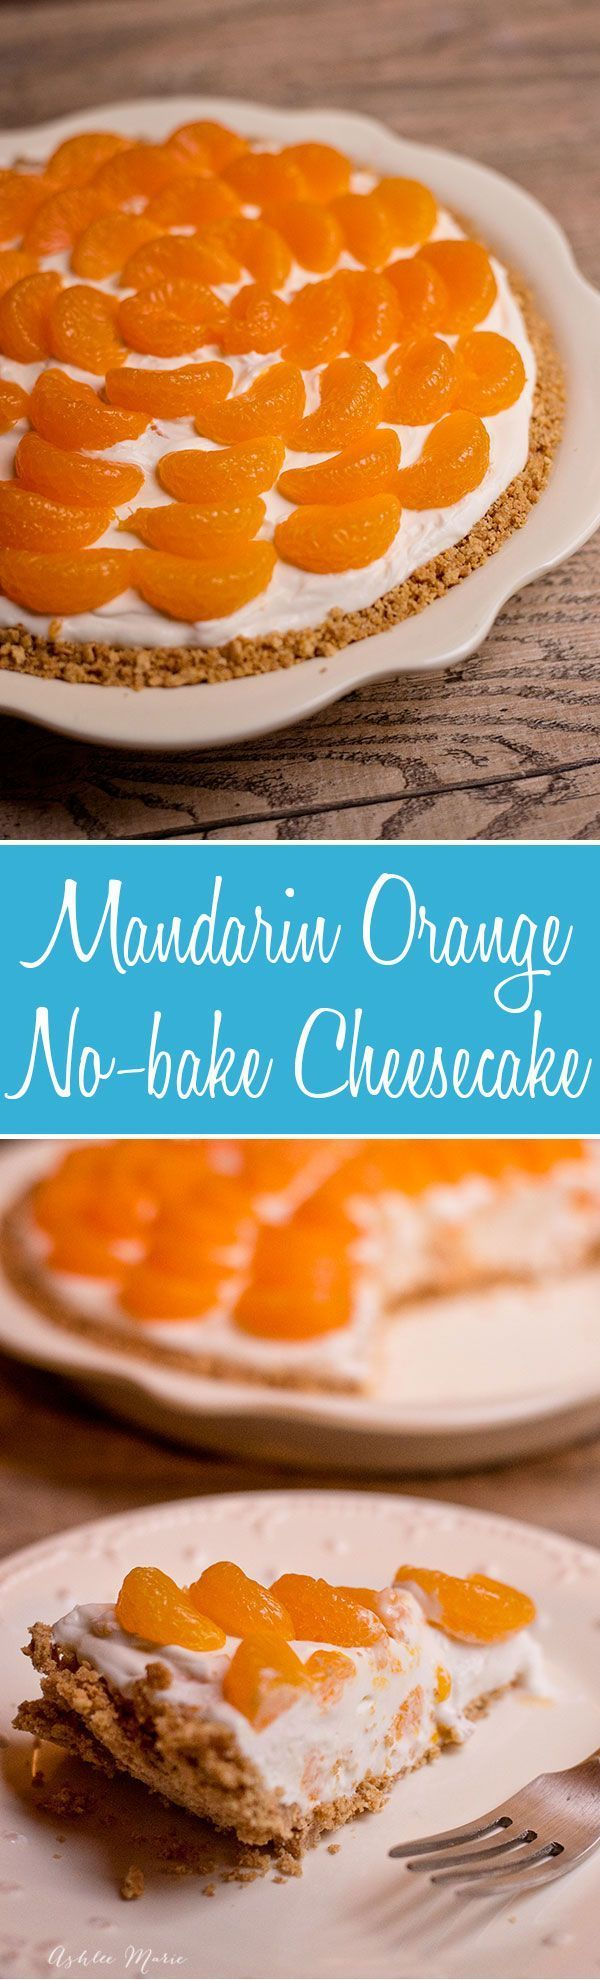 No bake cheesecake is easy to make and tastes amazing, adding mandarin oranges is a sweet addition that makes it even better DoleCannedFruit AD /DolePackaged/